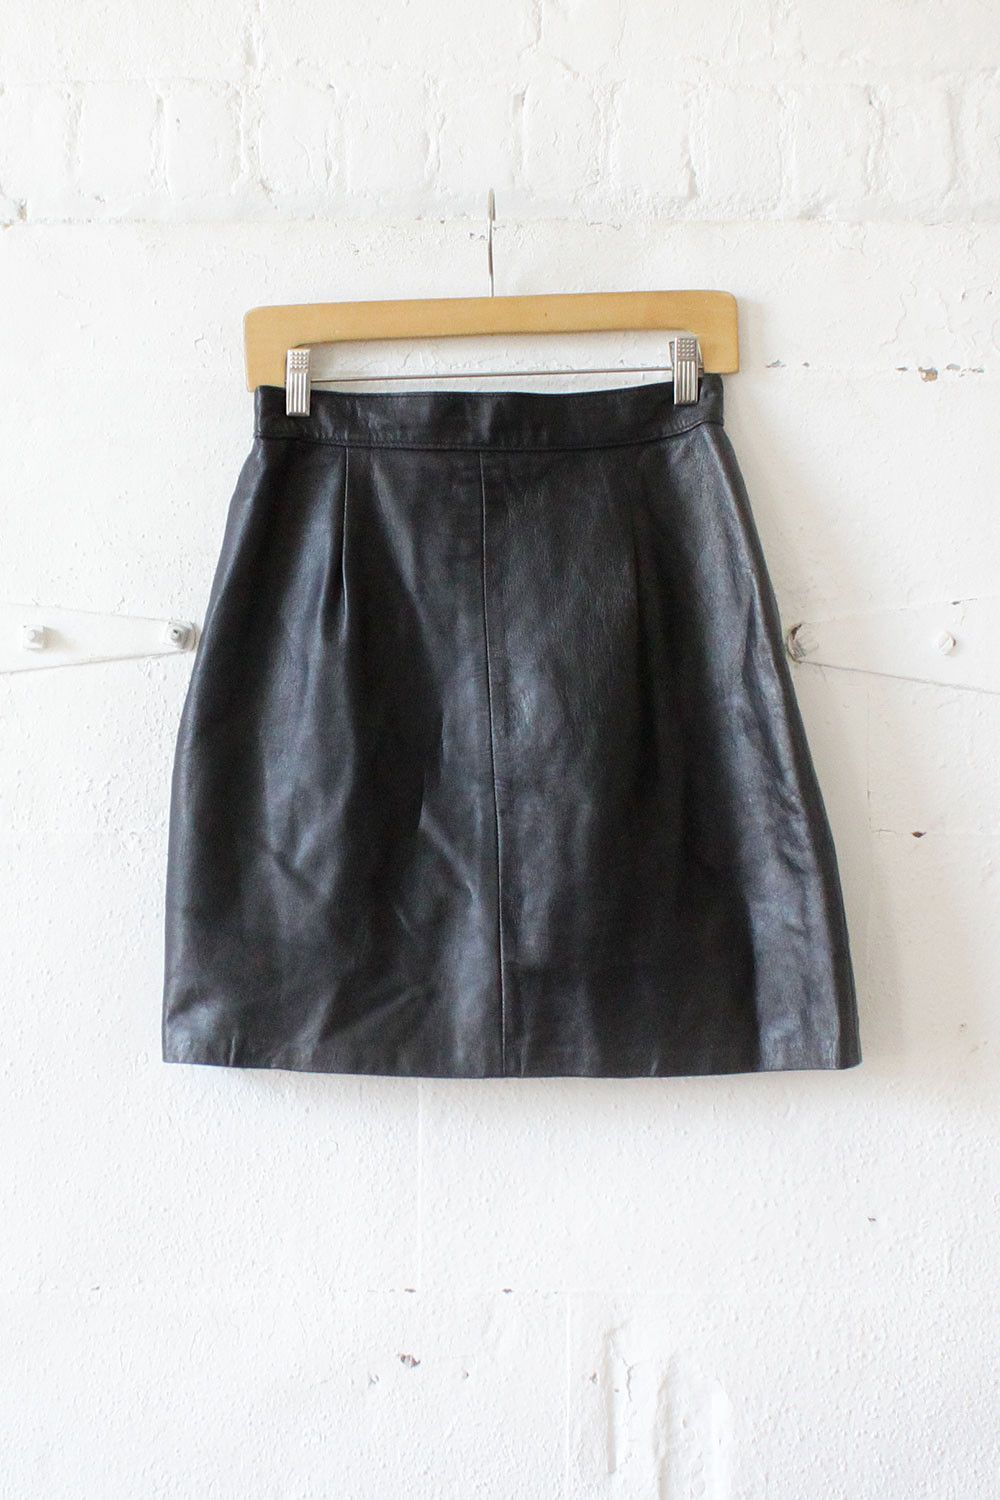 Black Leather Mini Skirt S • Vintage 80s Motorcycle Grunge Flared Mini Skirt. For similar items, please visit http://www.fashioncraycray.xyz/